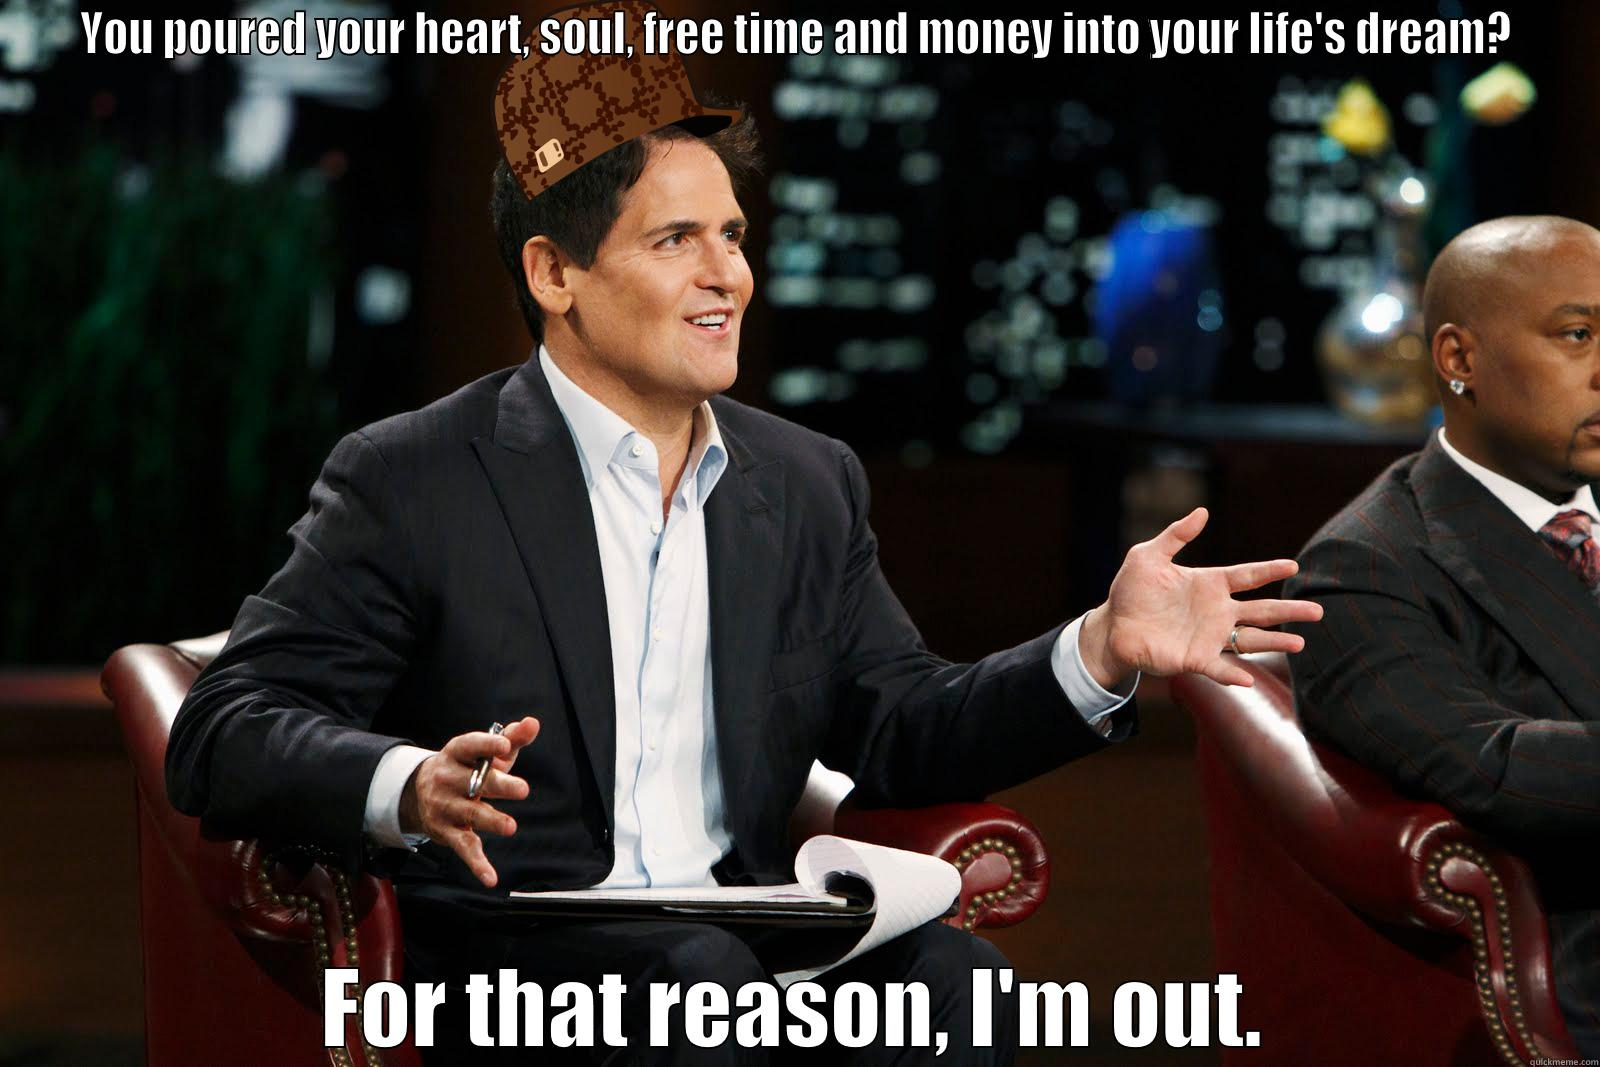 Scumbag Shark Tank - YOU POURED YOUR HEART, SOUL, FREE TIME AND MONEY INTO YOUR LIFE'S DREAM? FOR THAT REASON, I'M OUT. Misc